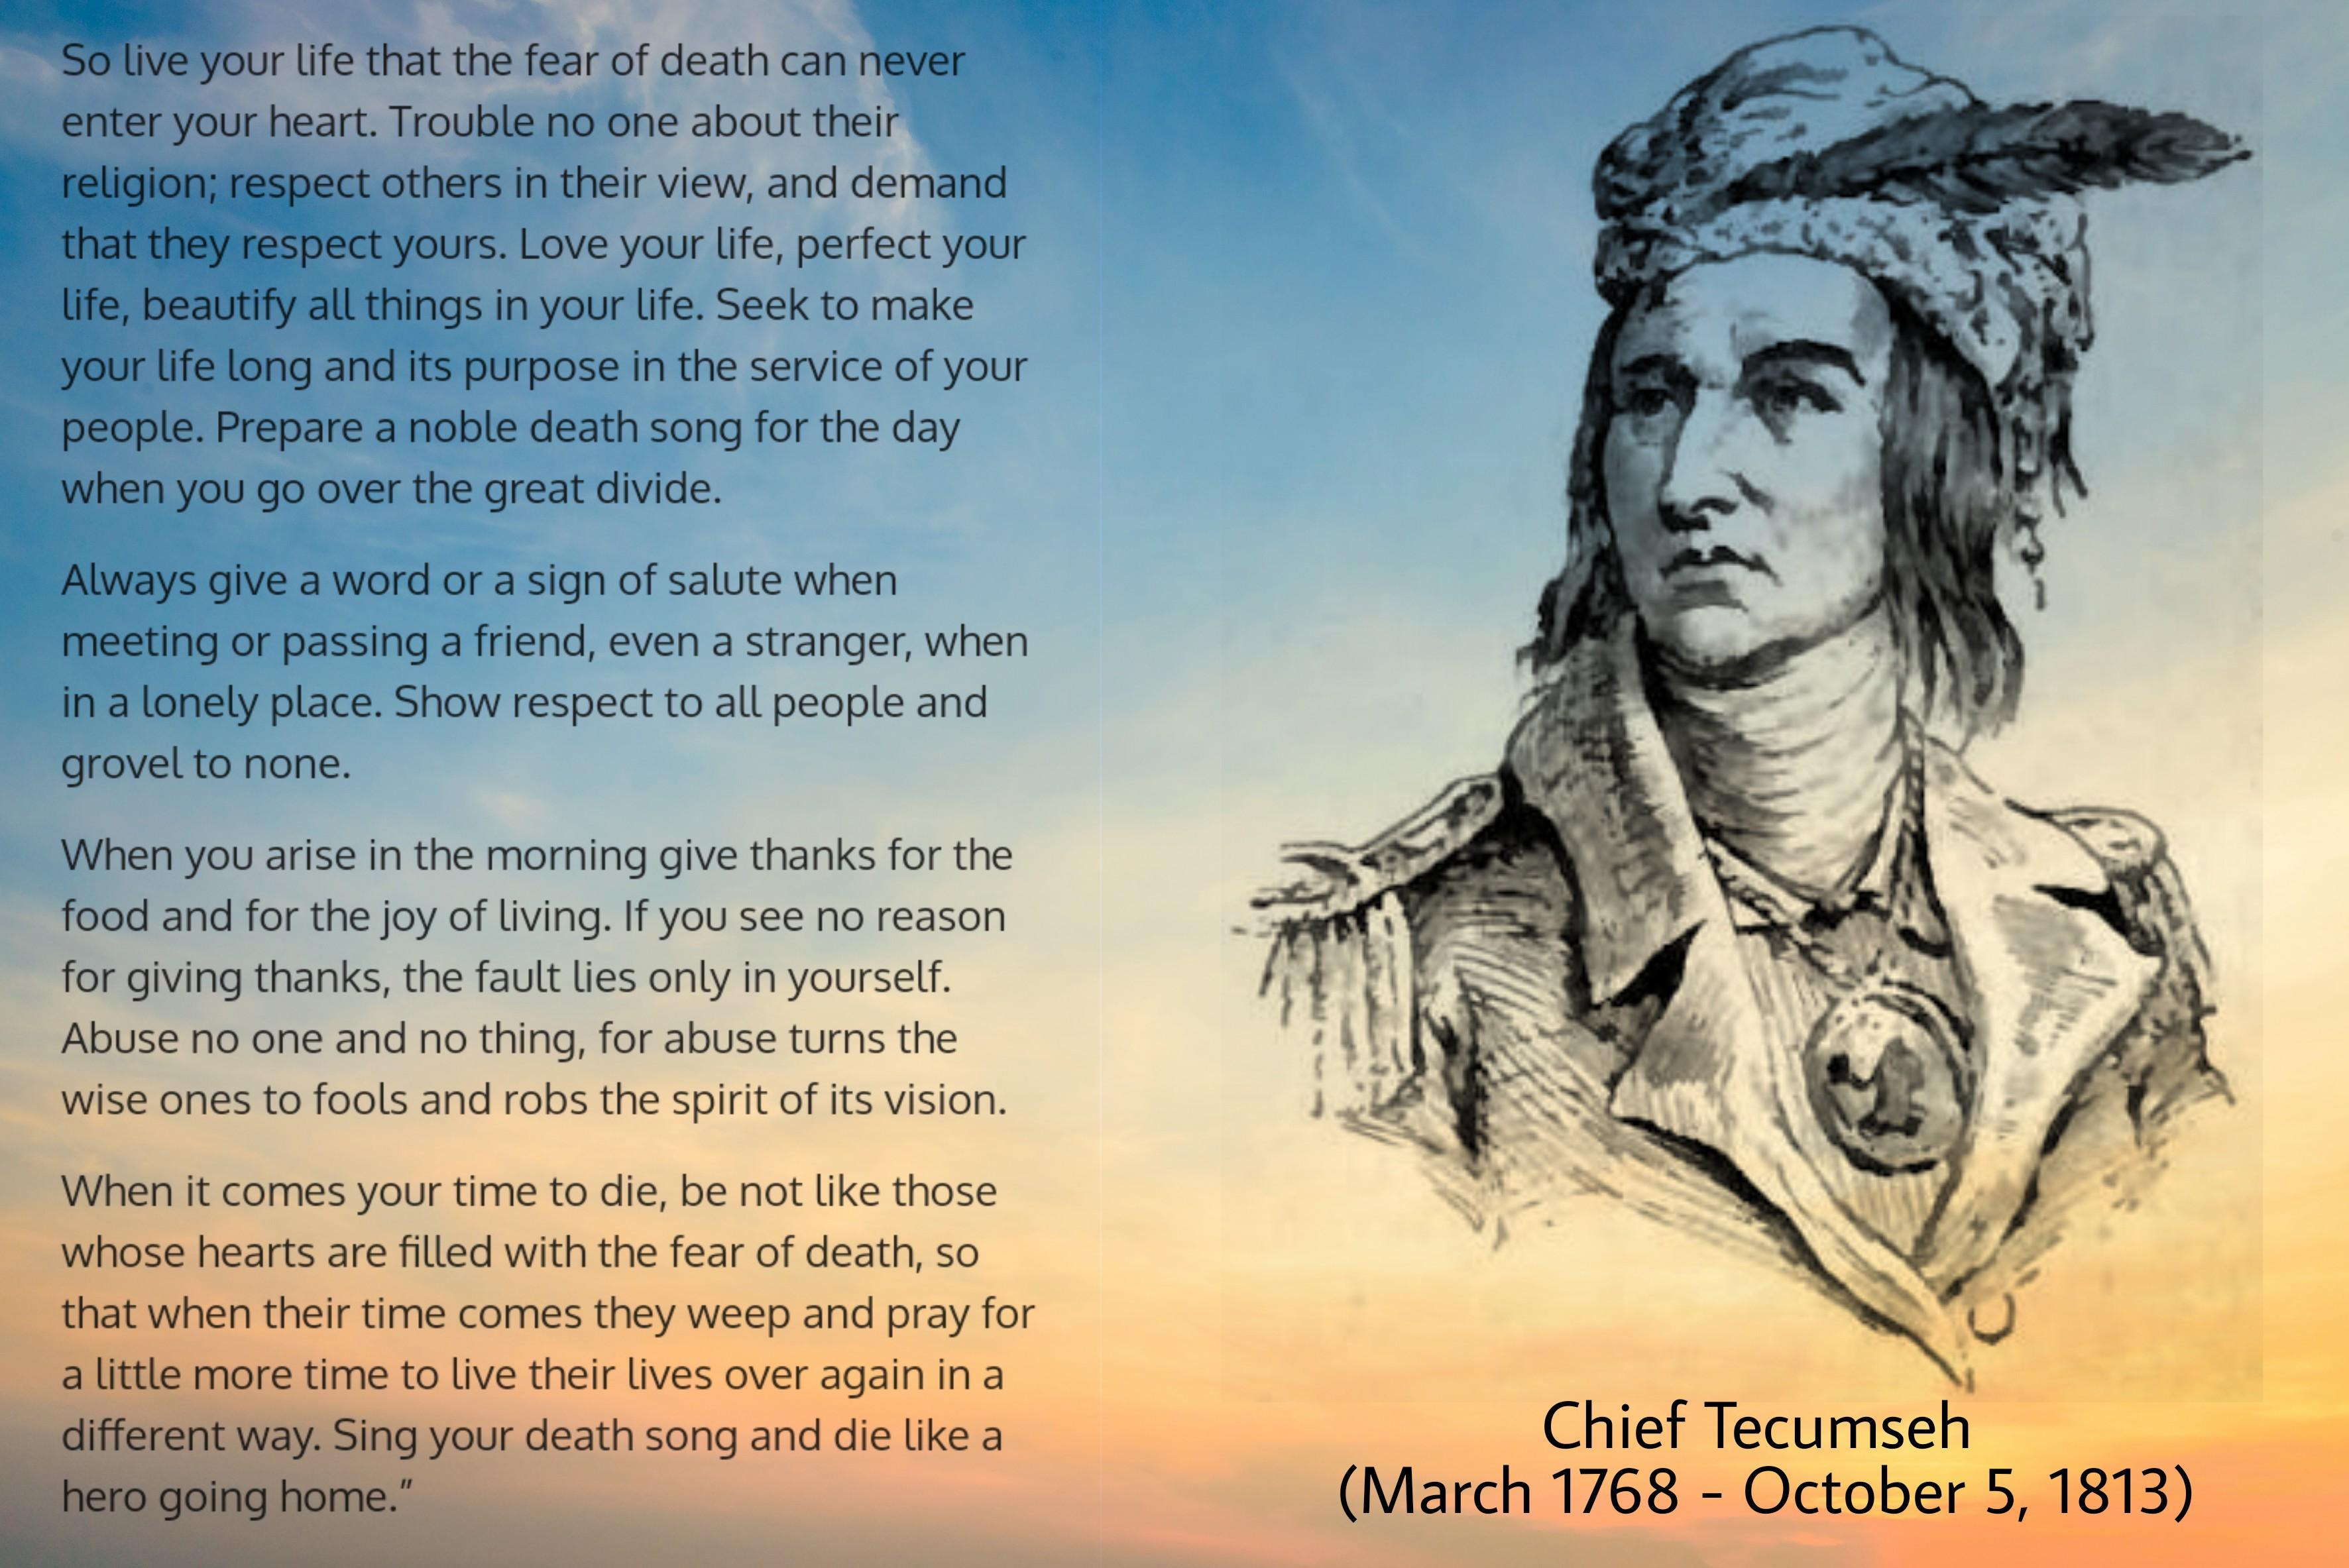 So live your life that the fear of death can never enter your heart. – Chief Tecumseh [3544×2366]